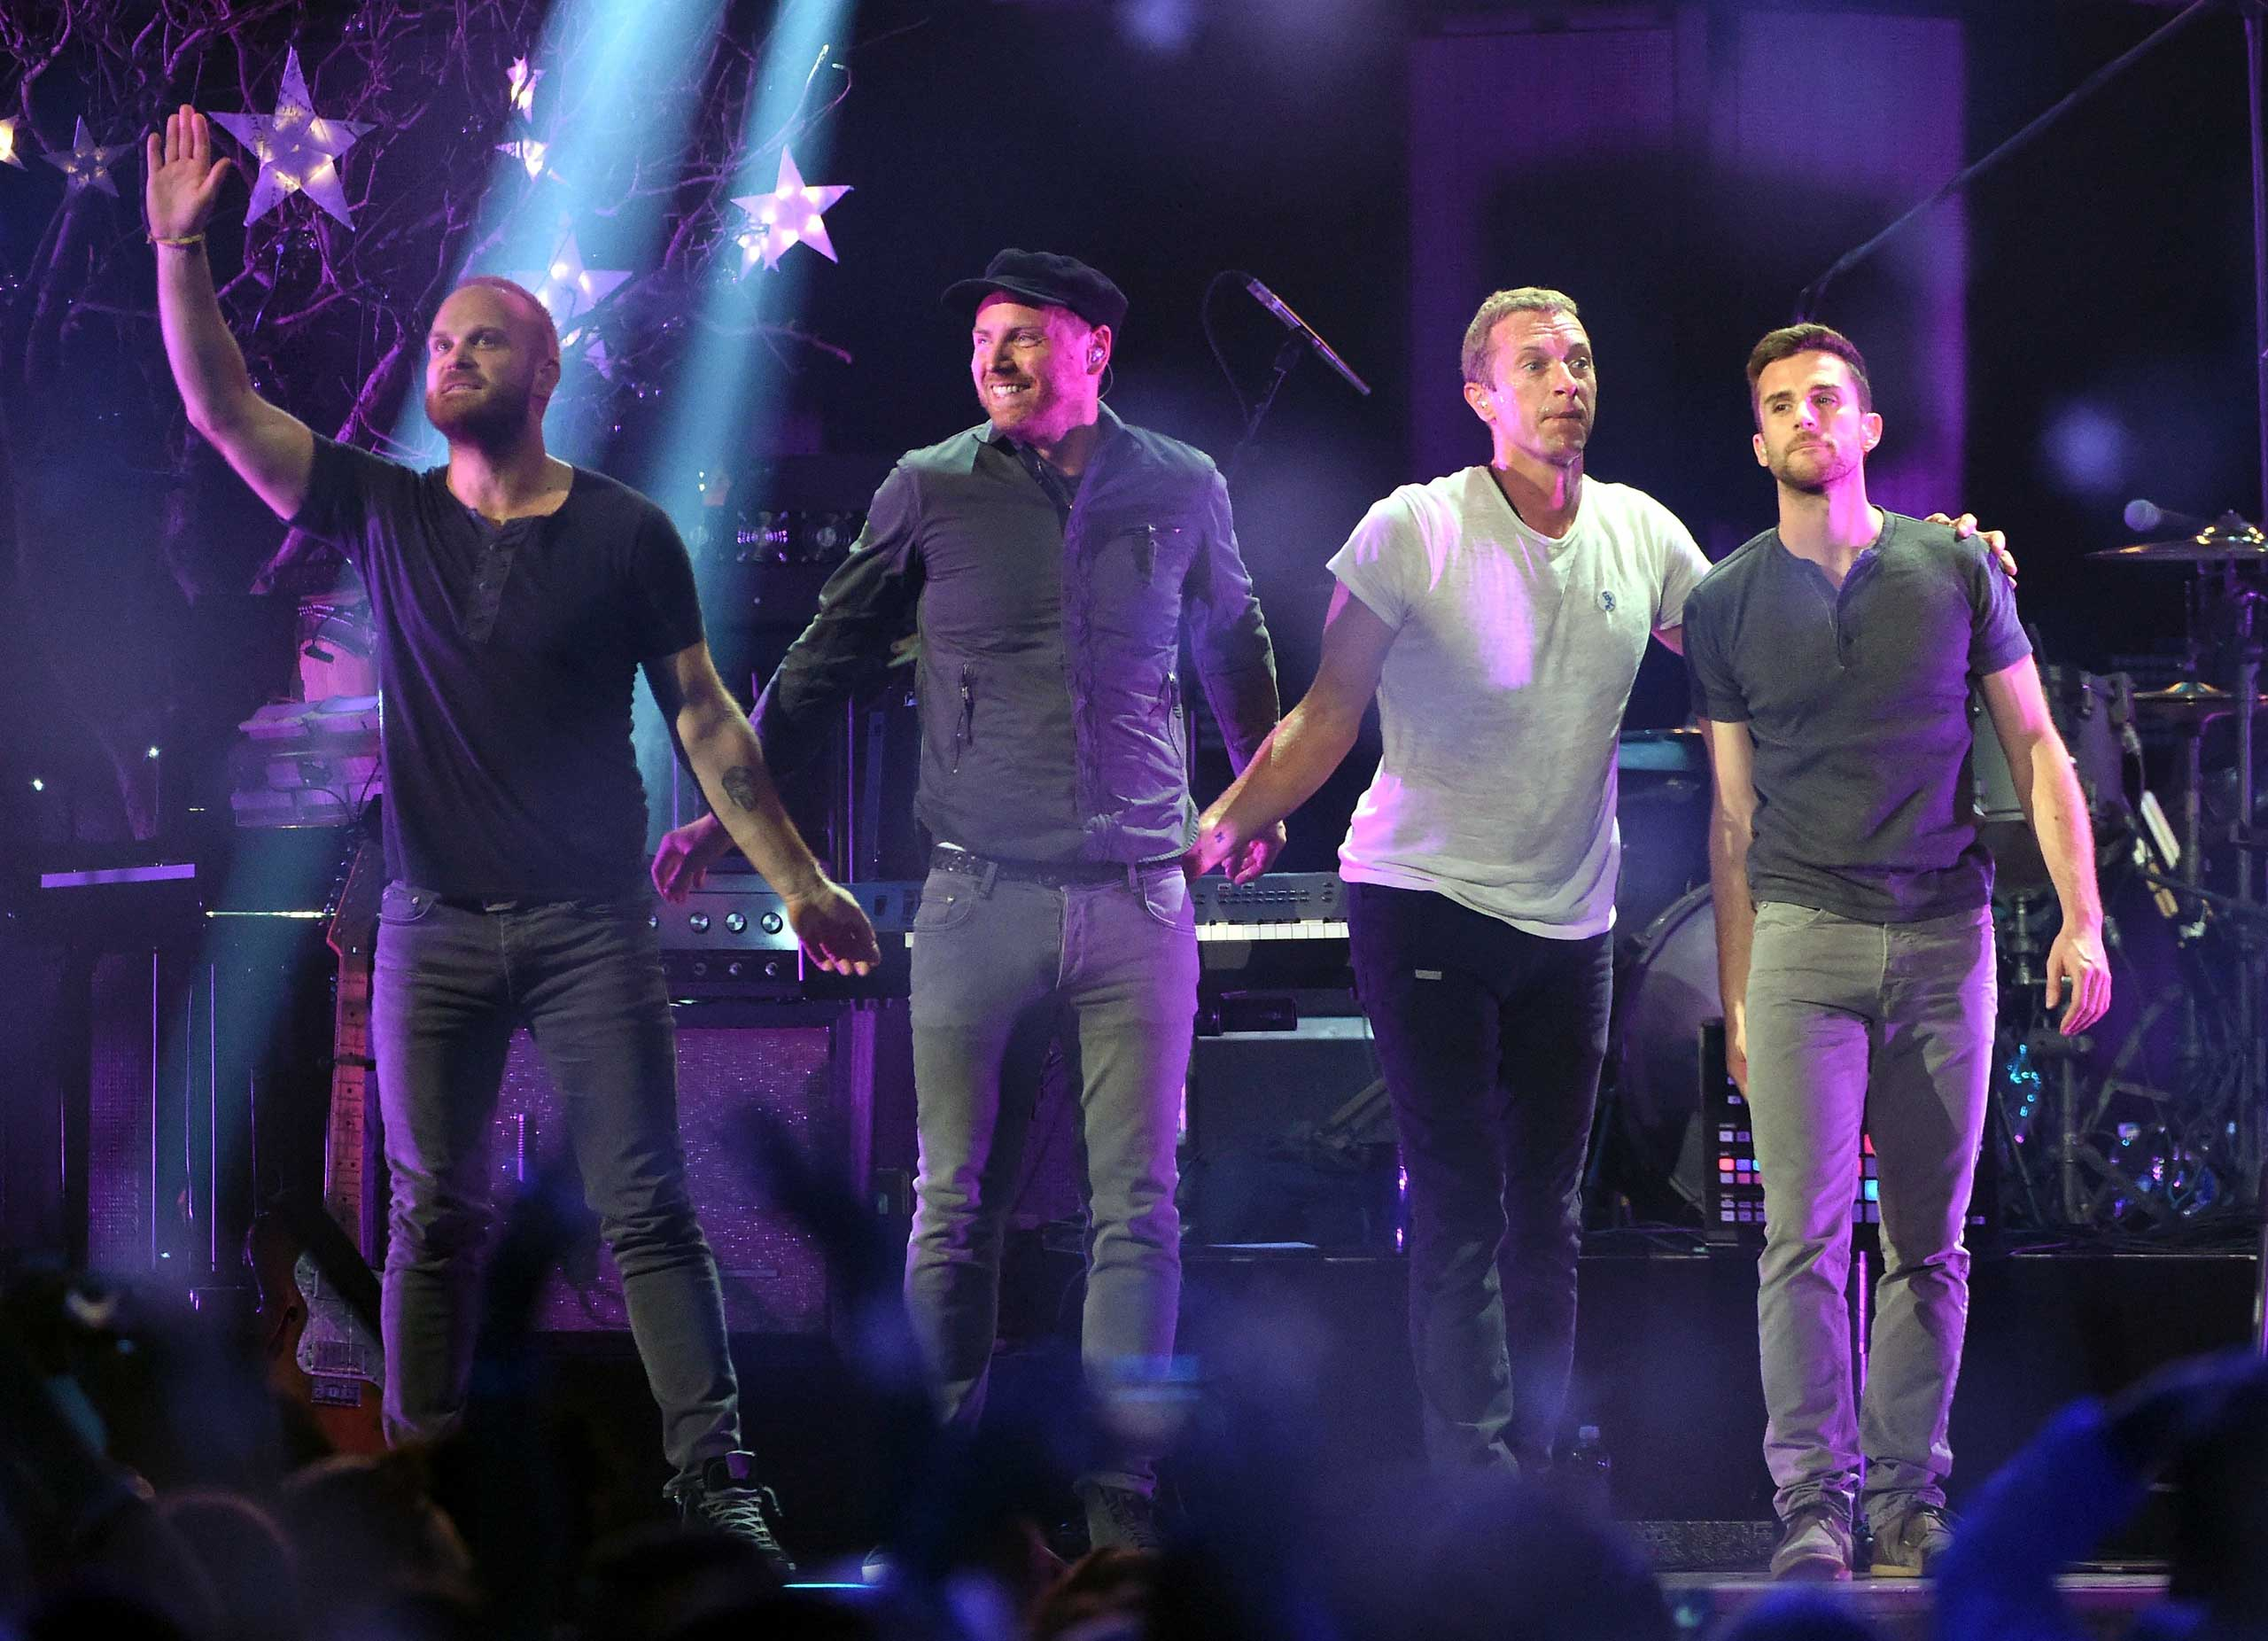 From left to right, drummer Will Champion, guitarist Jonny Buckland, frontman Chris Martin and bassist Guy Berryman of Coldplay perform during the 2014 iHeartRadio Music Festival on Sept. 19, 2014 in Las Vegas.